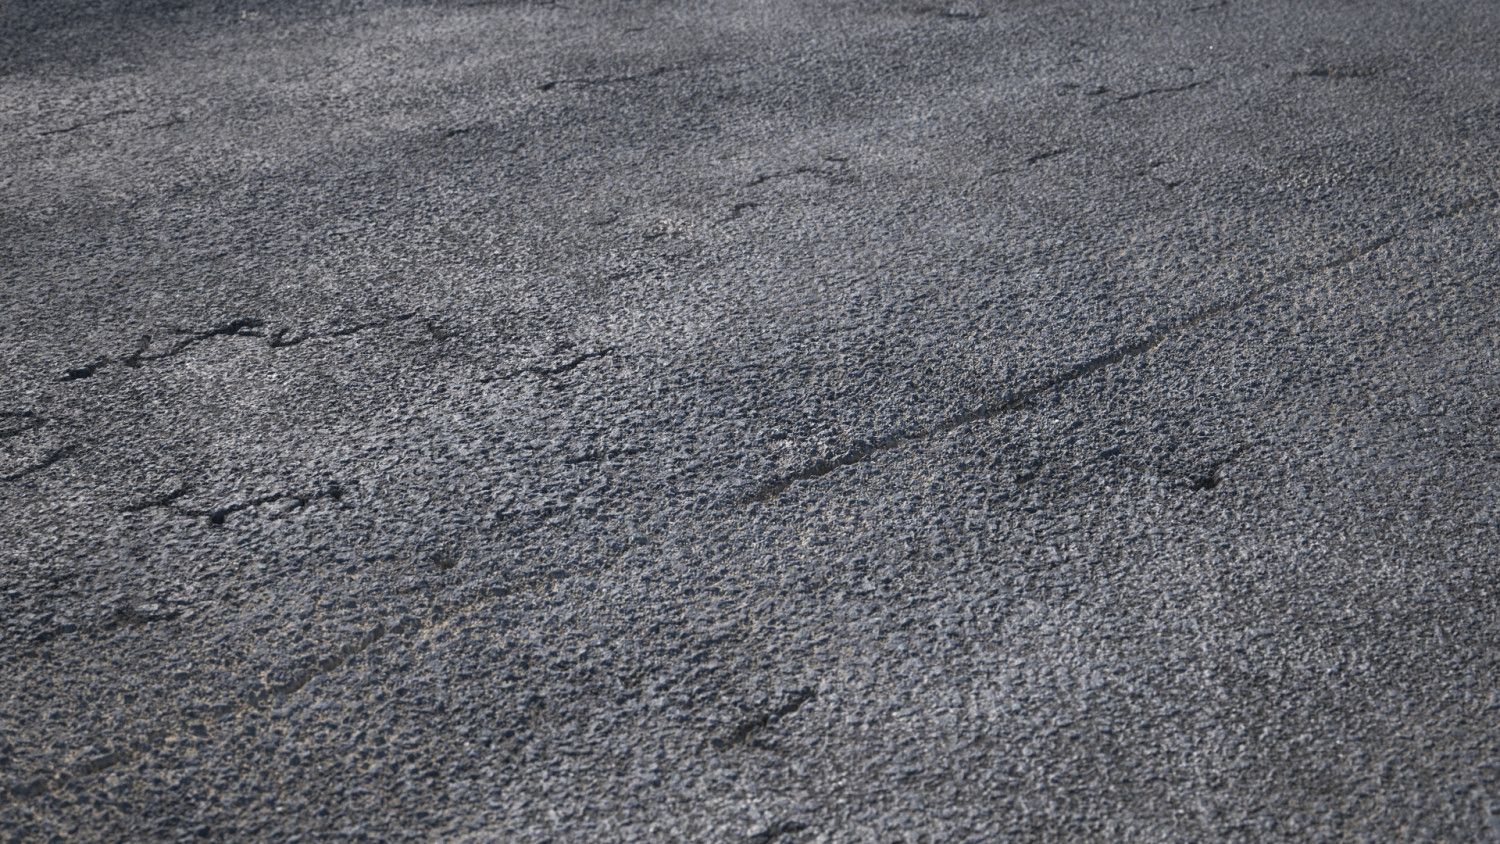 Old asphalt road texture